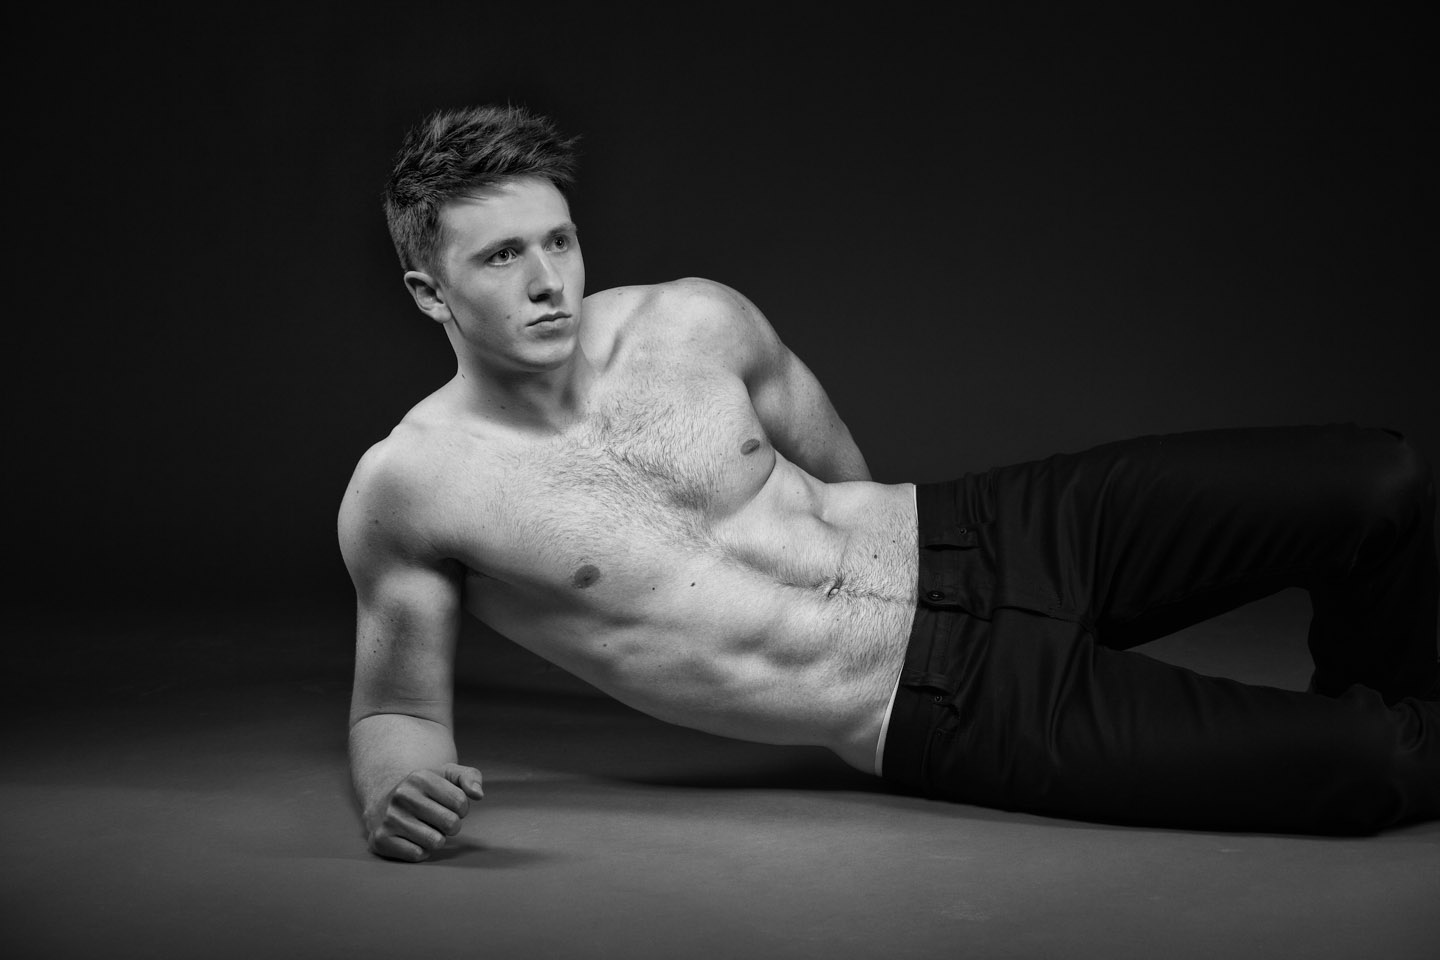 Trying some reclined poses for the shirtless male model